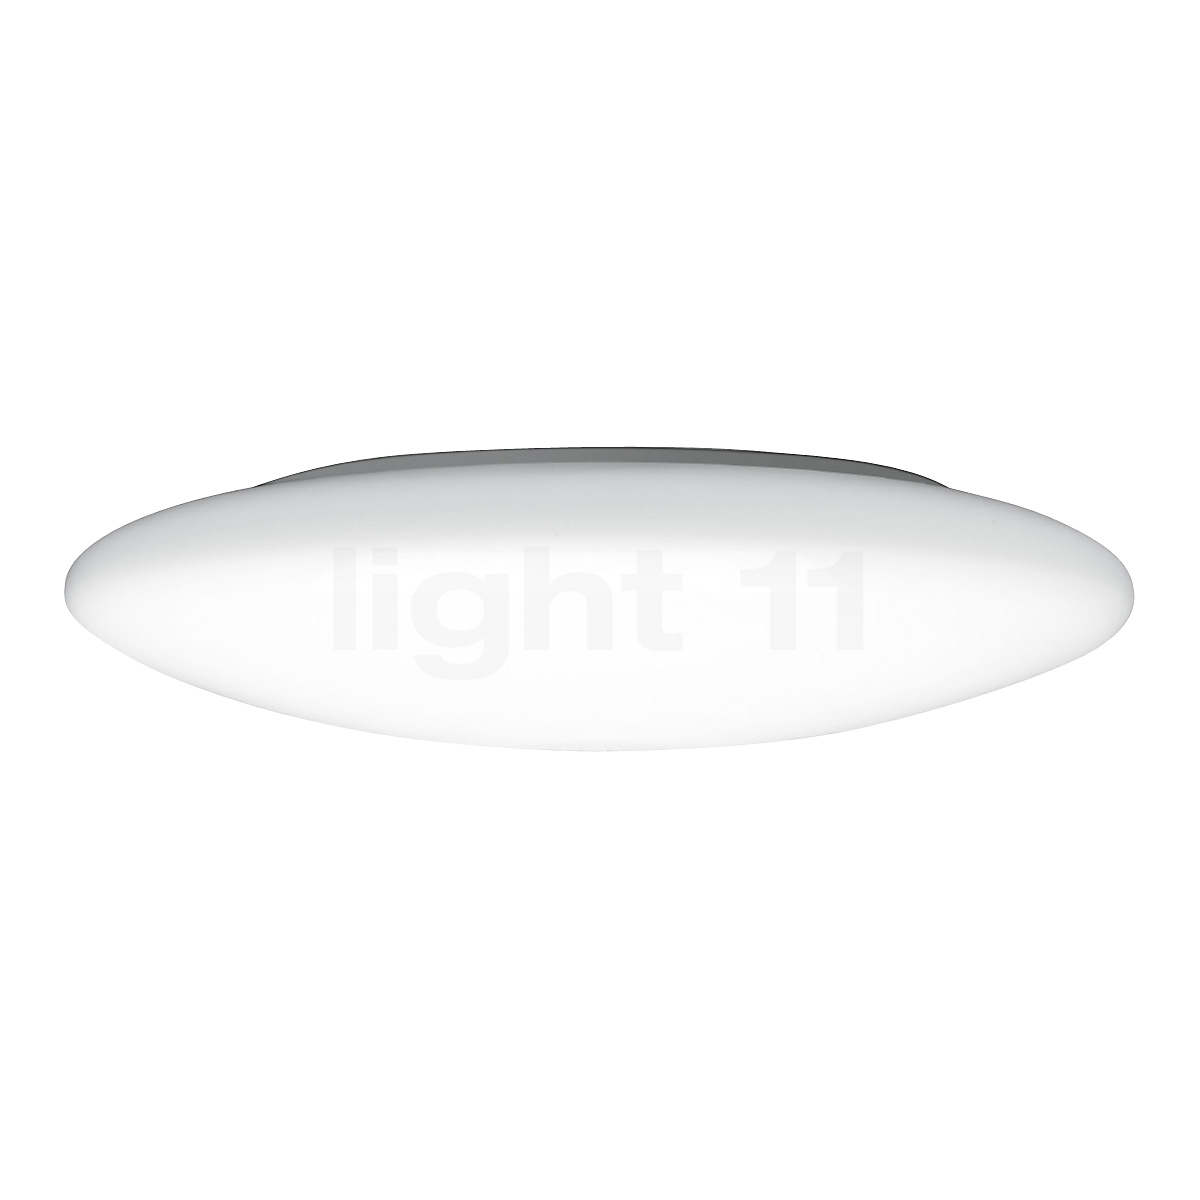 Glashutte Limburg 23296 - wall-/ceiling light LED Ceiling lights buy at light11.eu